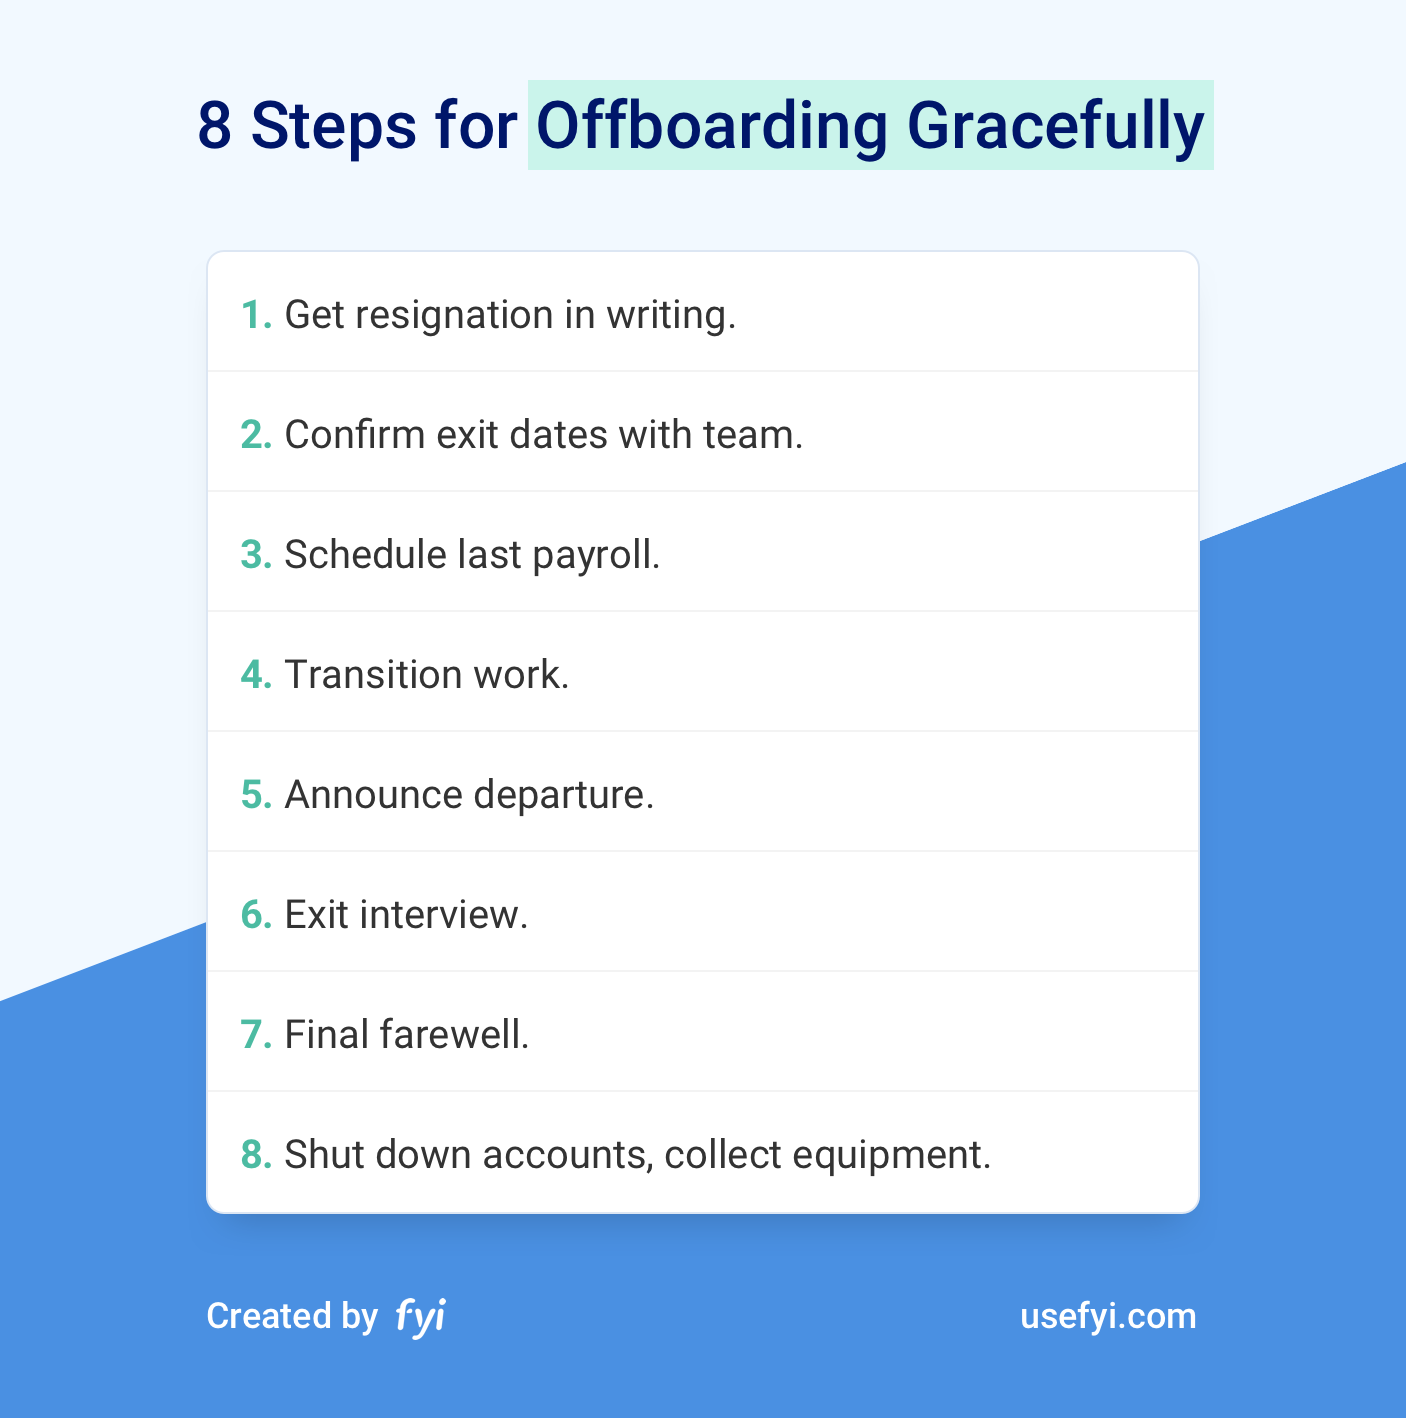 8 Steps to Offboarding